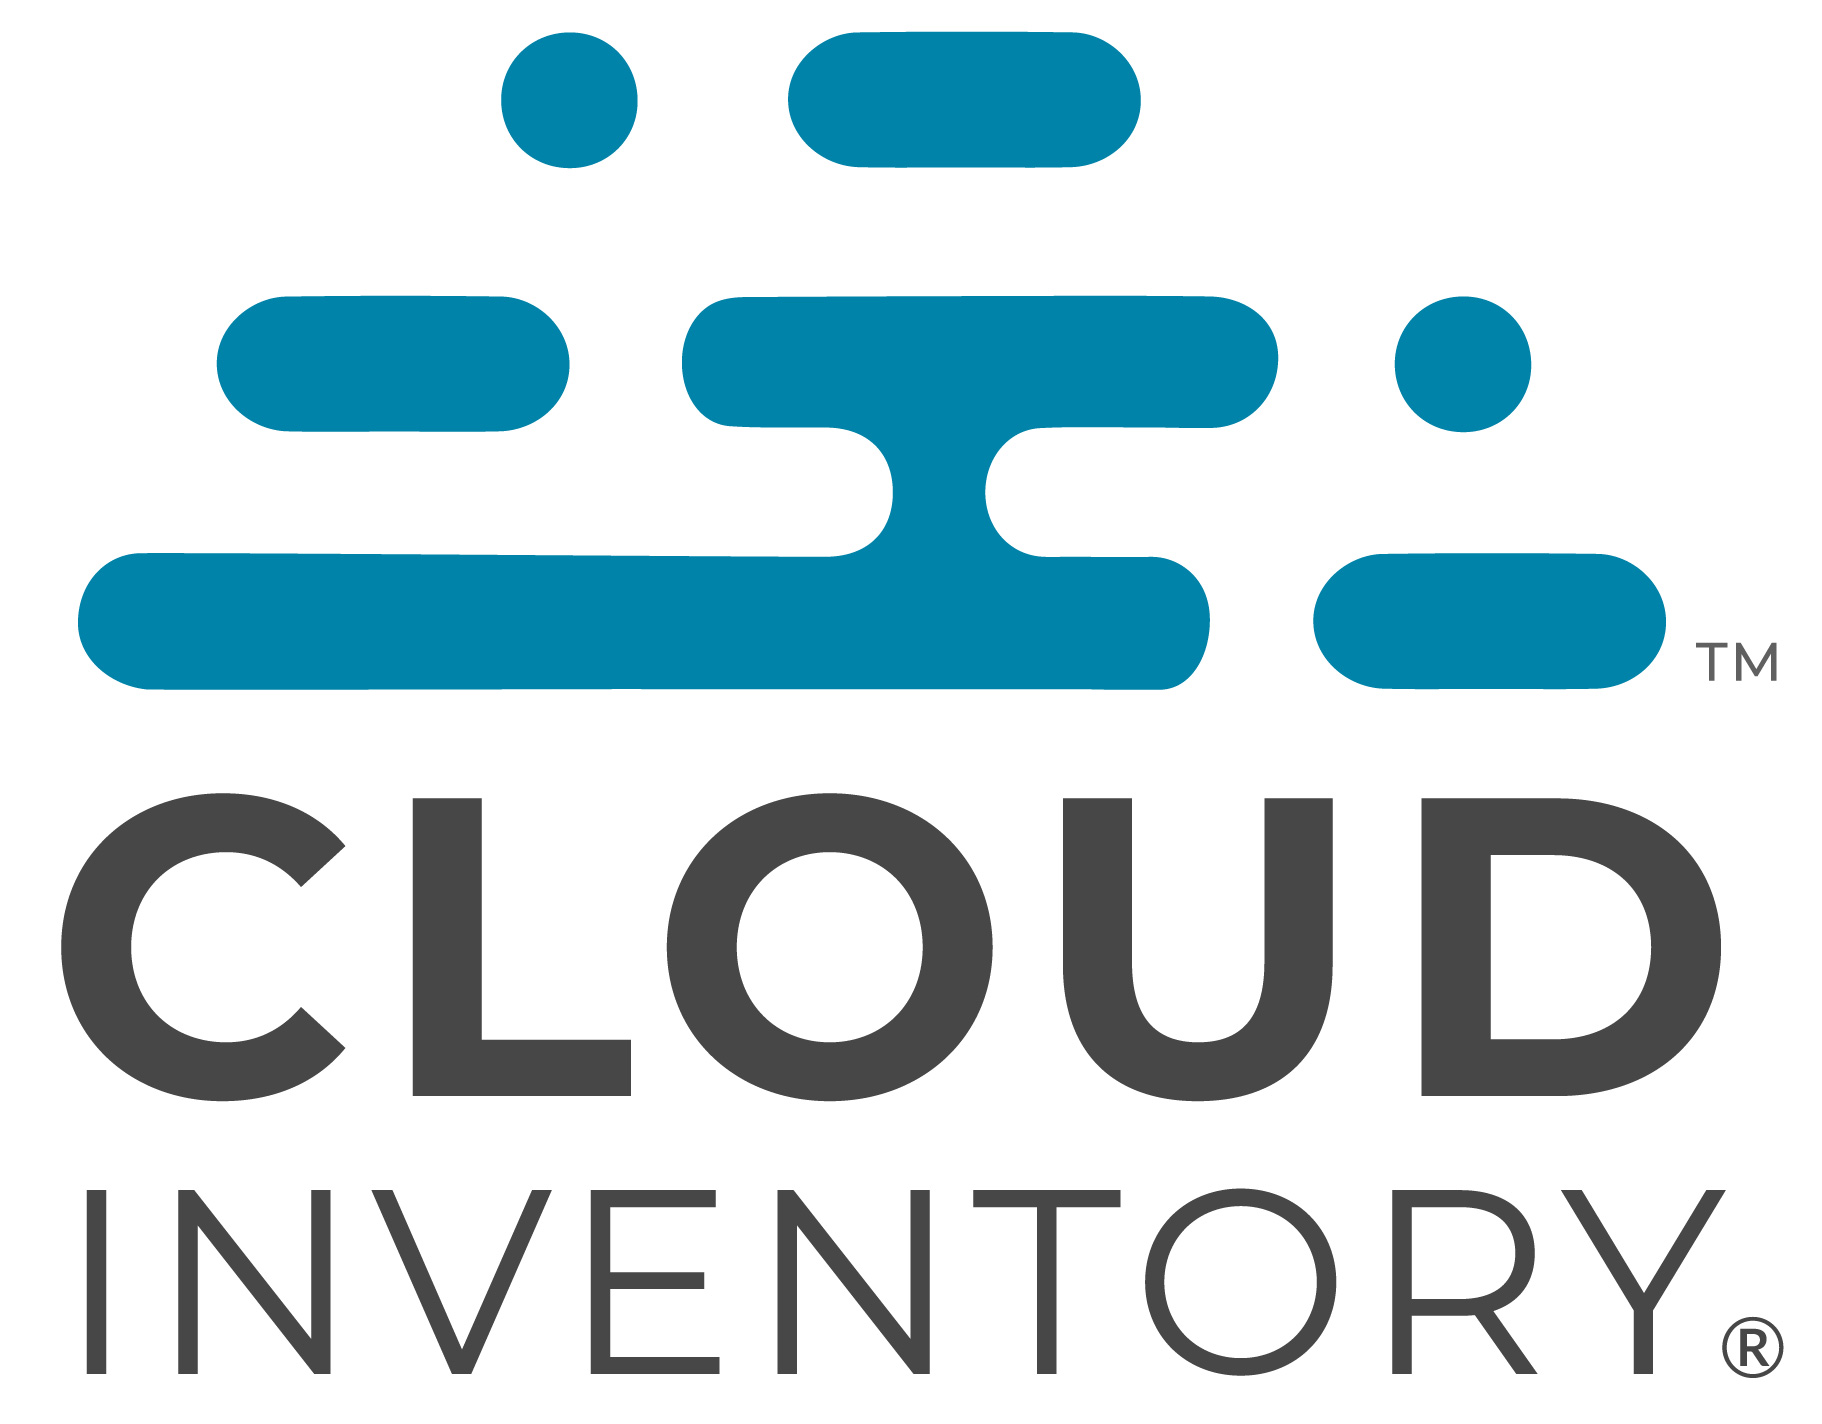 Cloud Inventory®